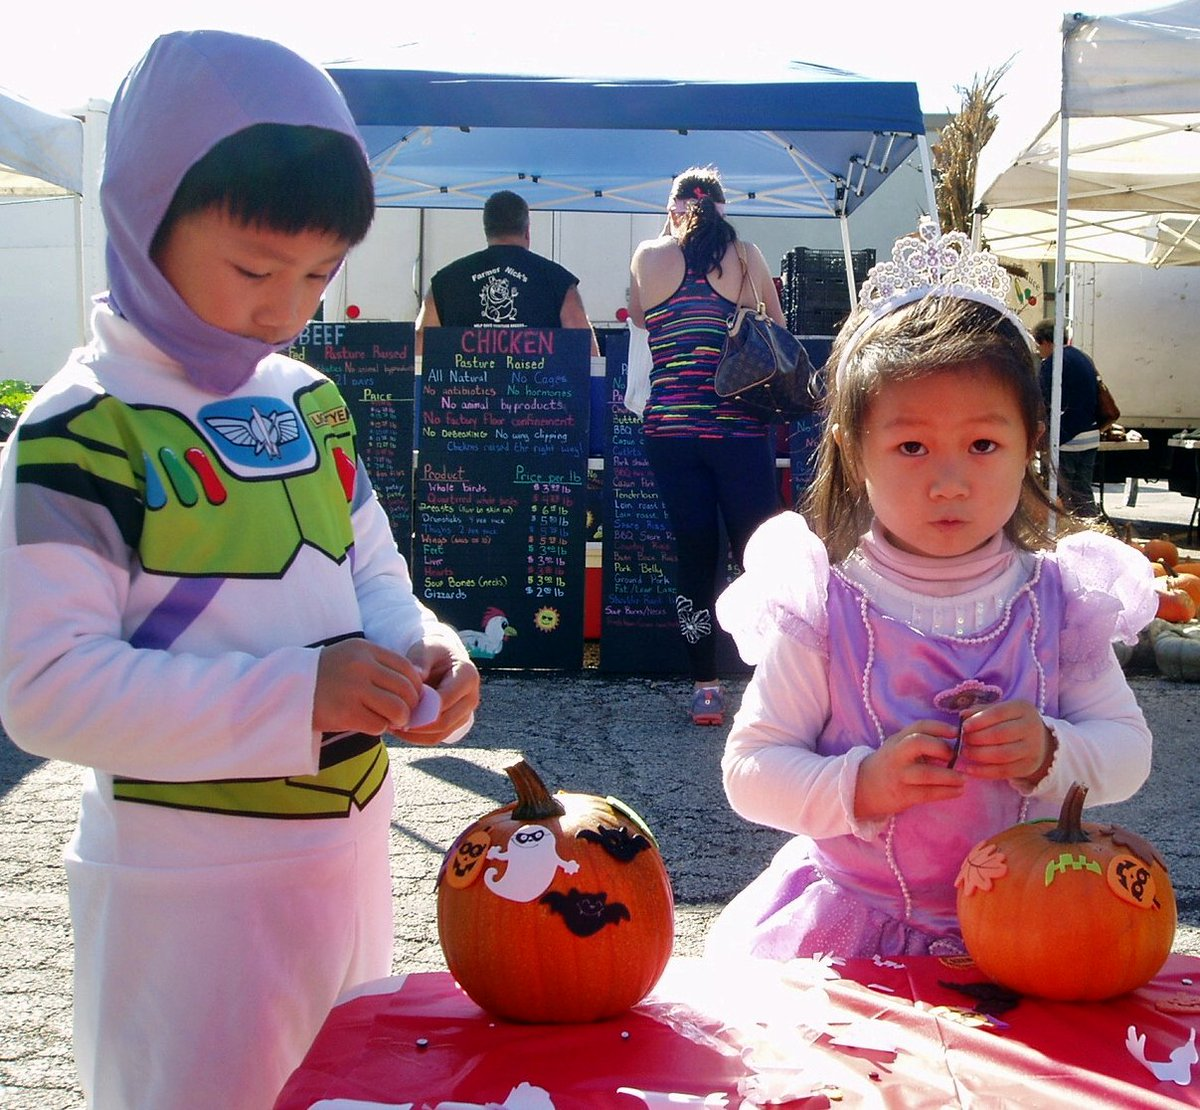 test Twitter Media - Northbrook Farmers Market (Meadow&Cherry Lane), NBK is offering a free pumpkin-decorating day for children ages 3 to 6 from 9 a.m-Noon, Wed. Oct. 17 w/NBK Comm. Nursery School volunteers. Kids of all ages in costume can stop by for free treat! #d30learns https://t.co/73ehY6tS4D